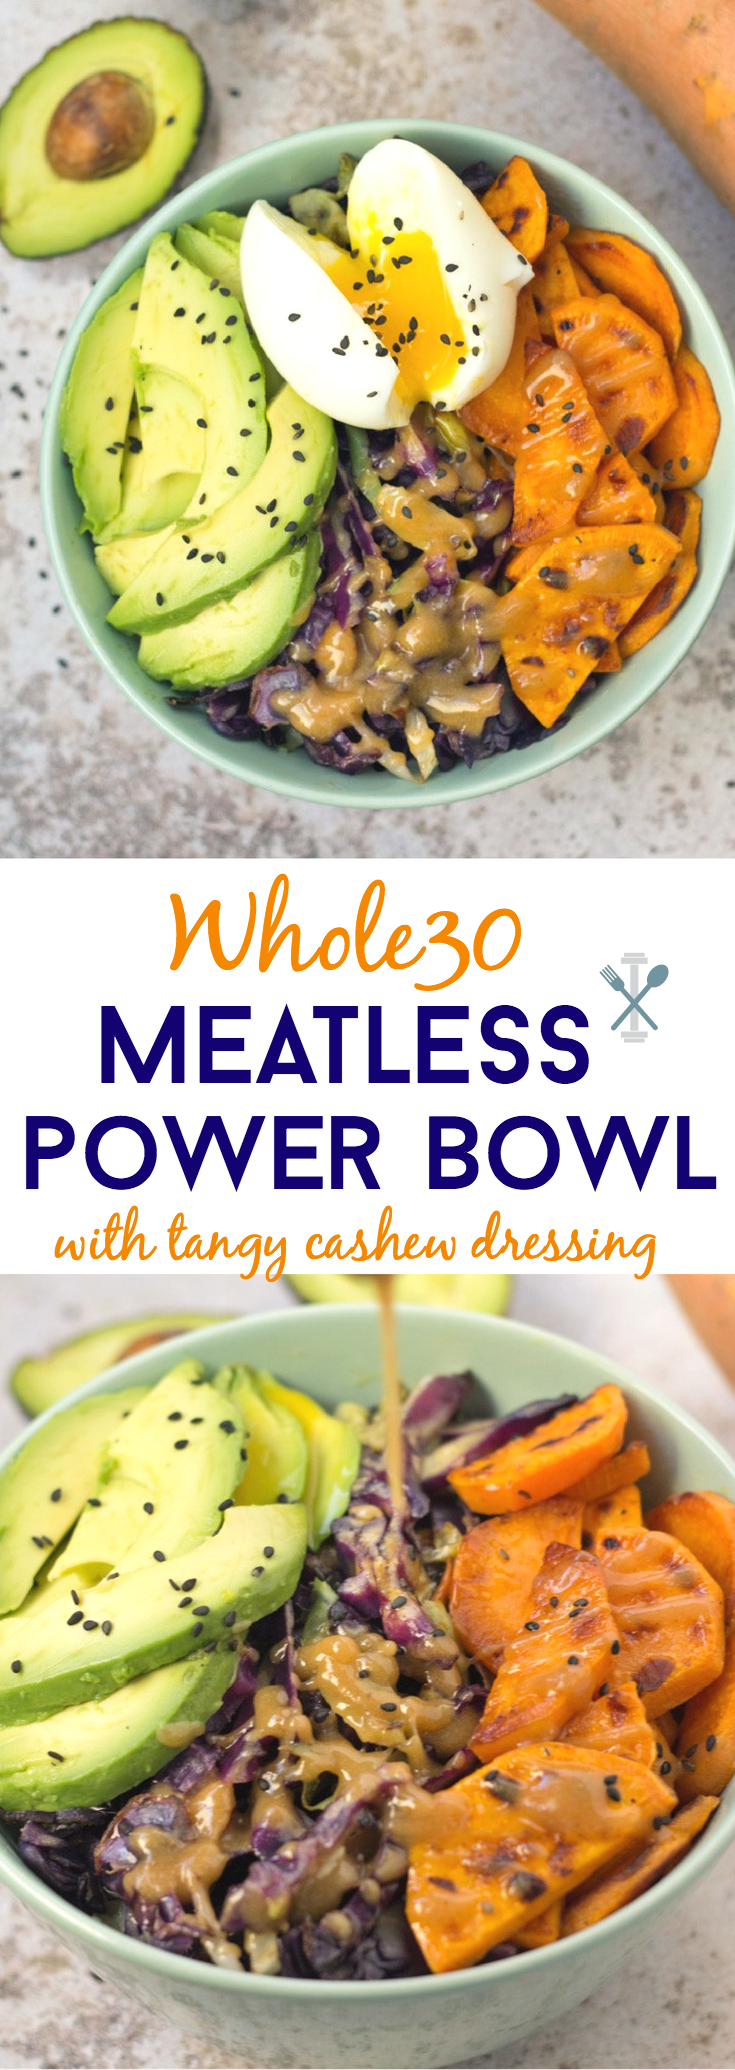 A nutritious power bowl that's Whole30 compliant, quick to make, and meatless! Sautéed cabbage, sweet potatoes, and avocados drizzled in a tangy cashew butter dressing. Add an egg on top for the perfect Whole30 lunch!